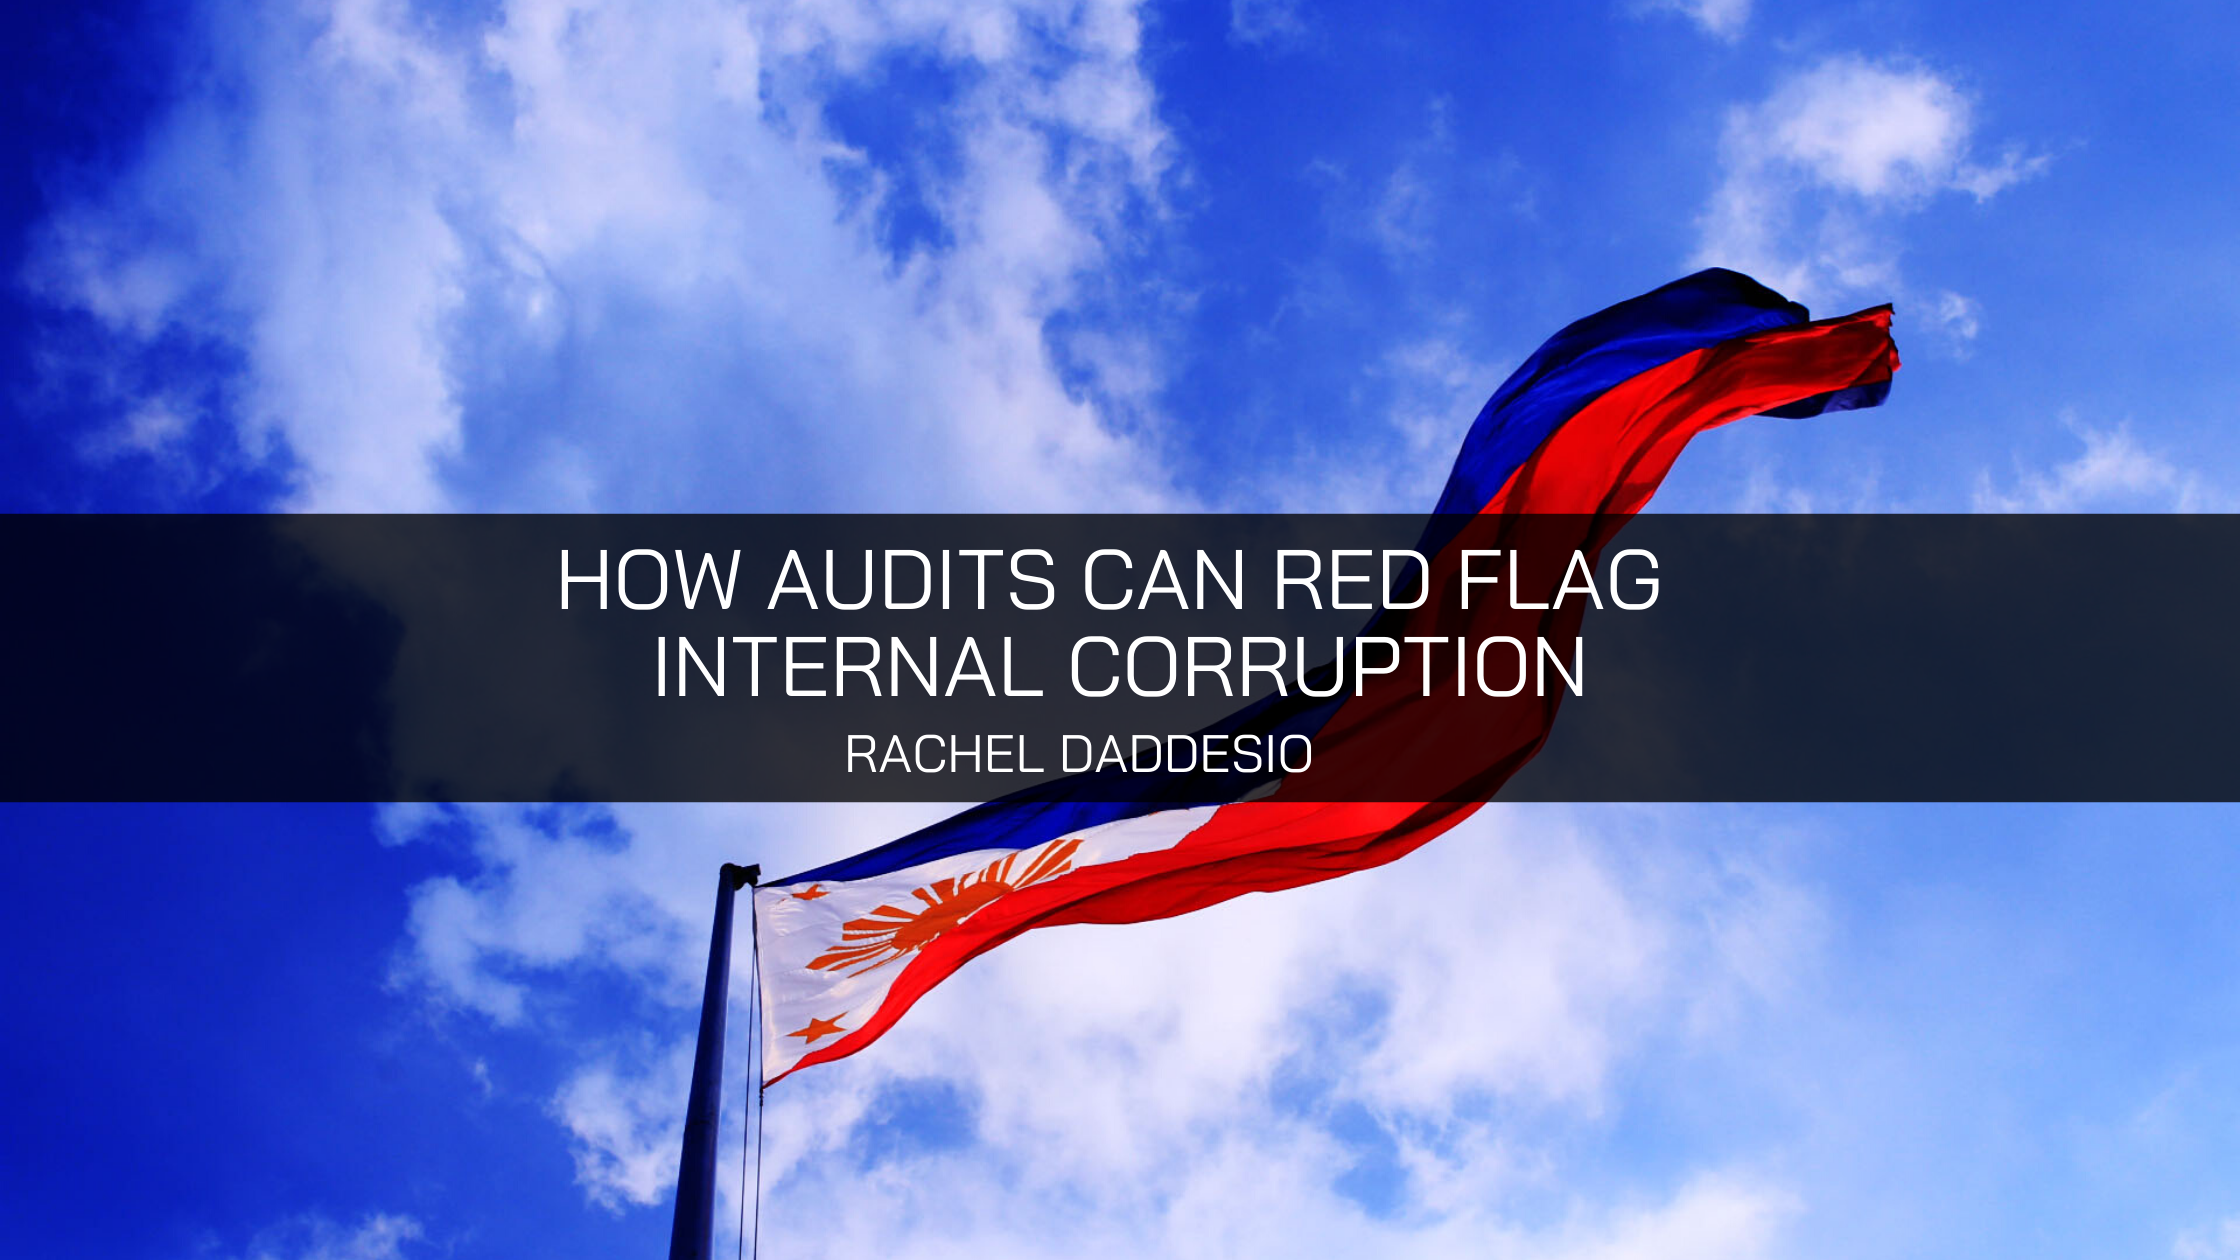 Rachel Daddesio Explains How Audits Can Red Flag Internal Corruption